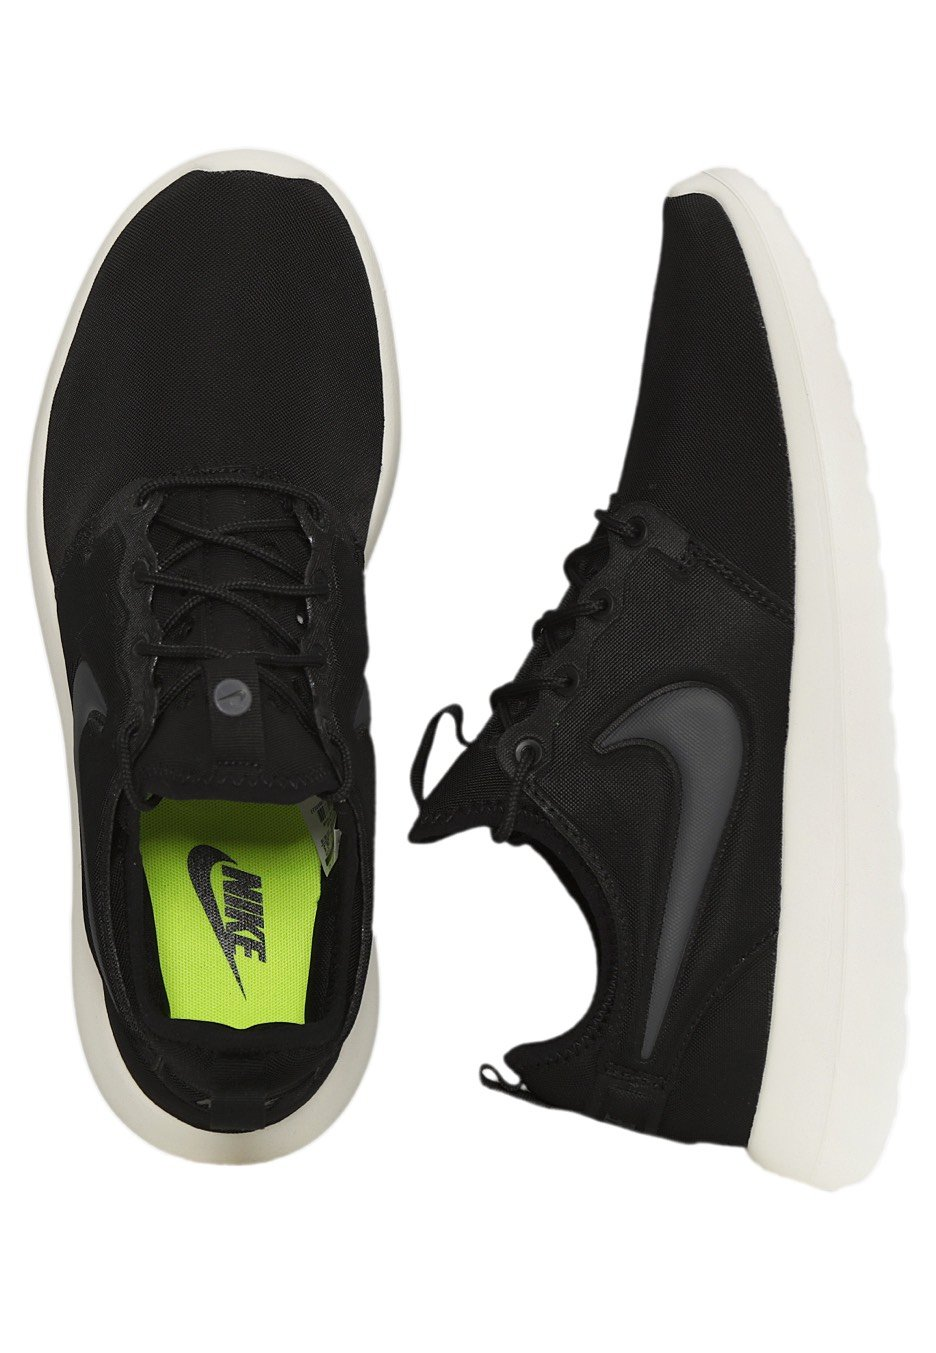 dfc79e6651af Nike - Roshe Two Black Anthracite Sail Volt - Shoes - Impericon.com US